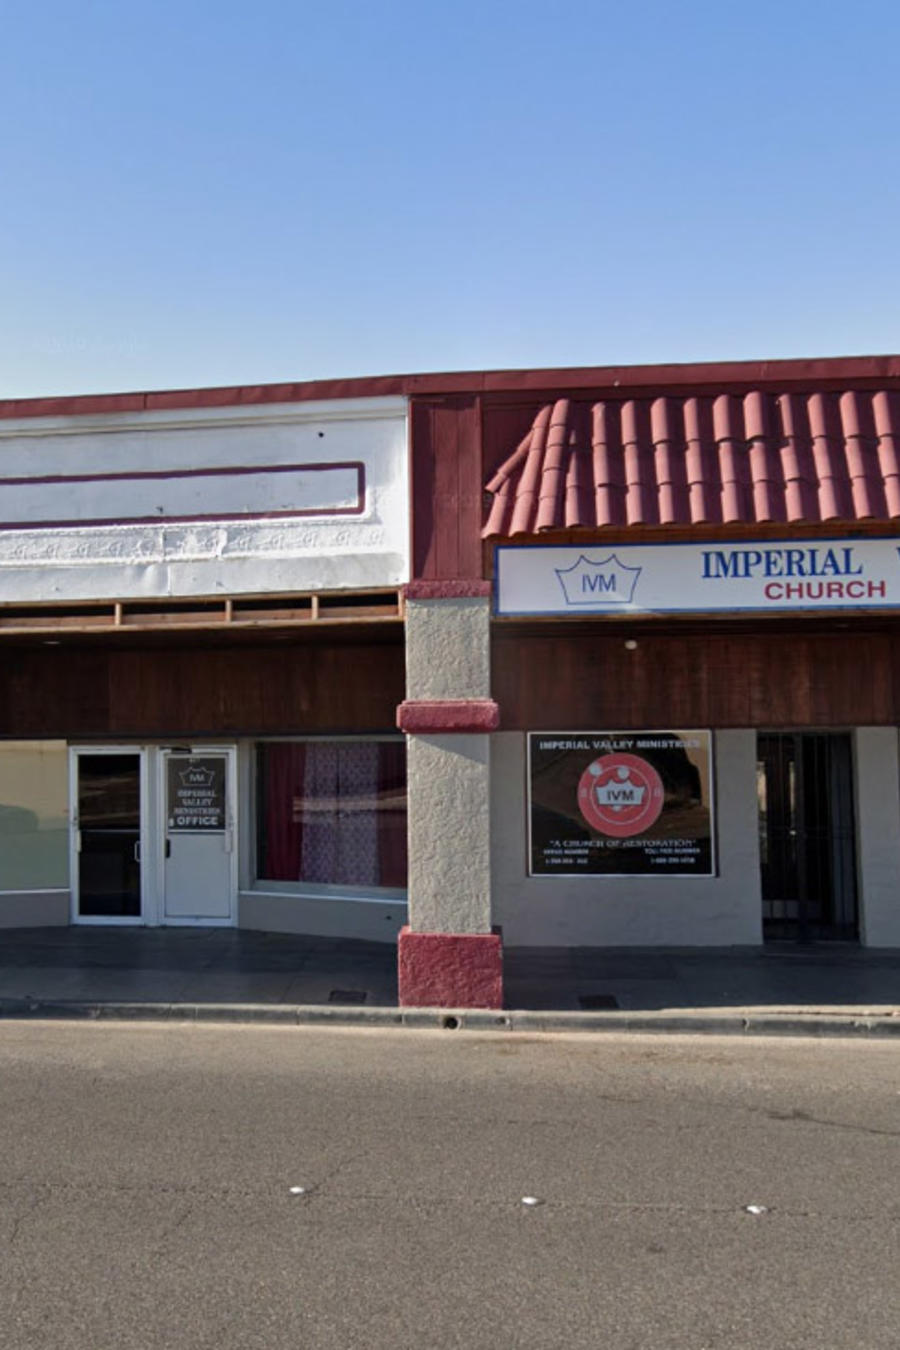 Local de Imperial Valley Ministries en El Centro (California).